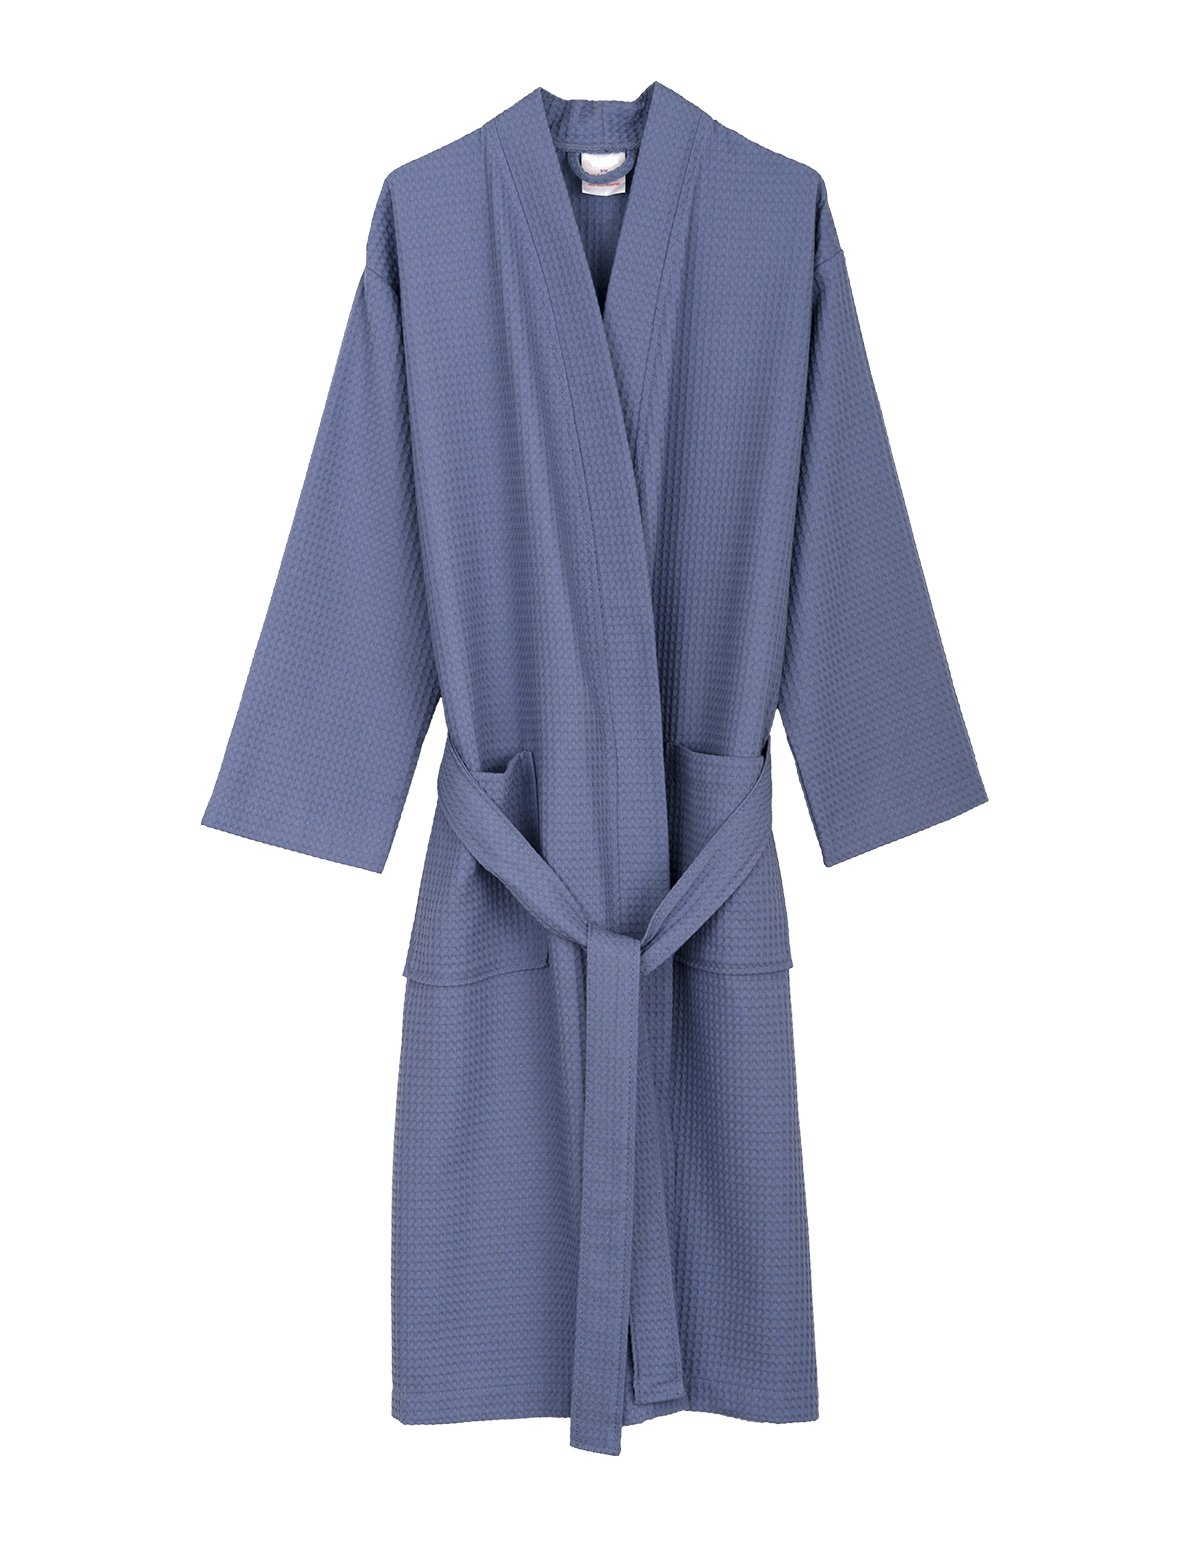 TowelSelections Men's Waffle Bathrobe Turkish Cotton Kimono Robe Medium/Large Bleached Denim by TowelSelections (Image #1)